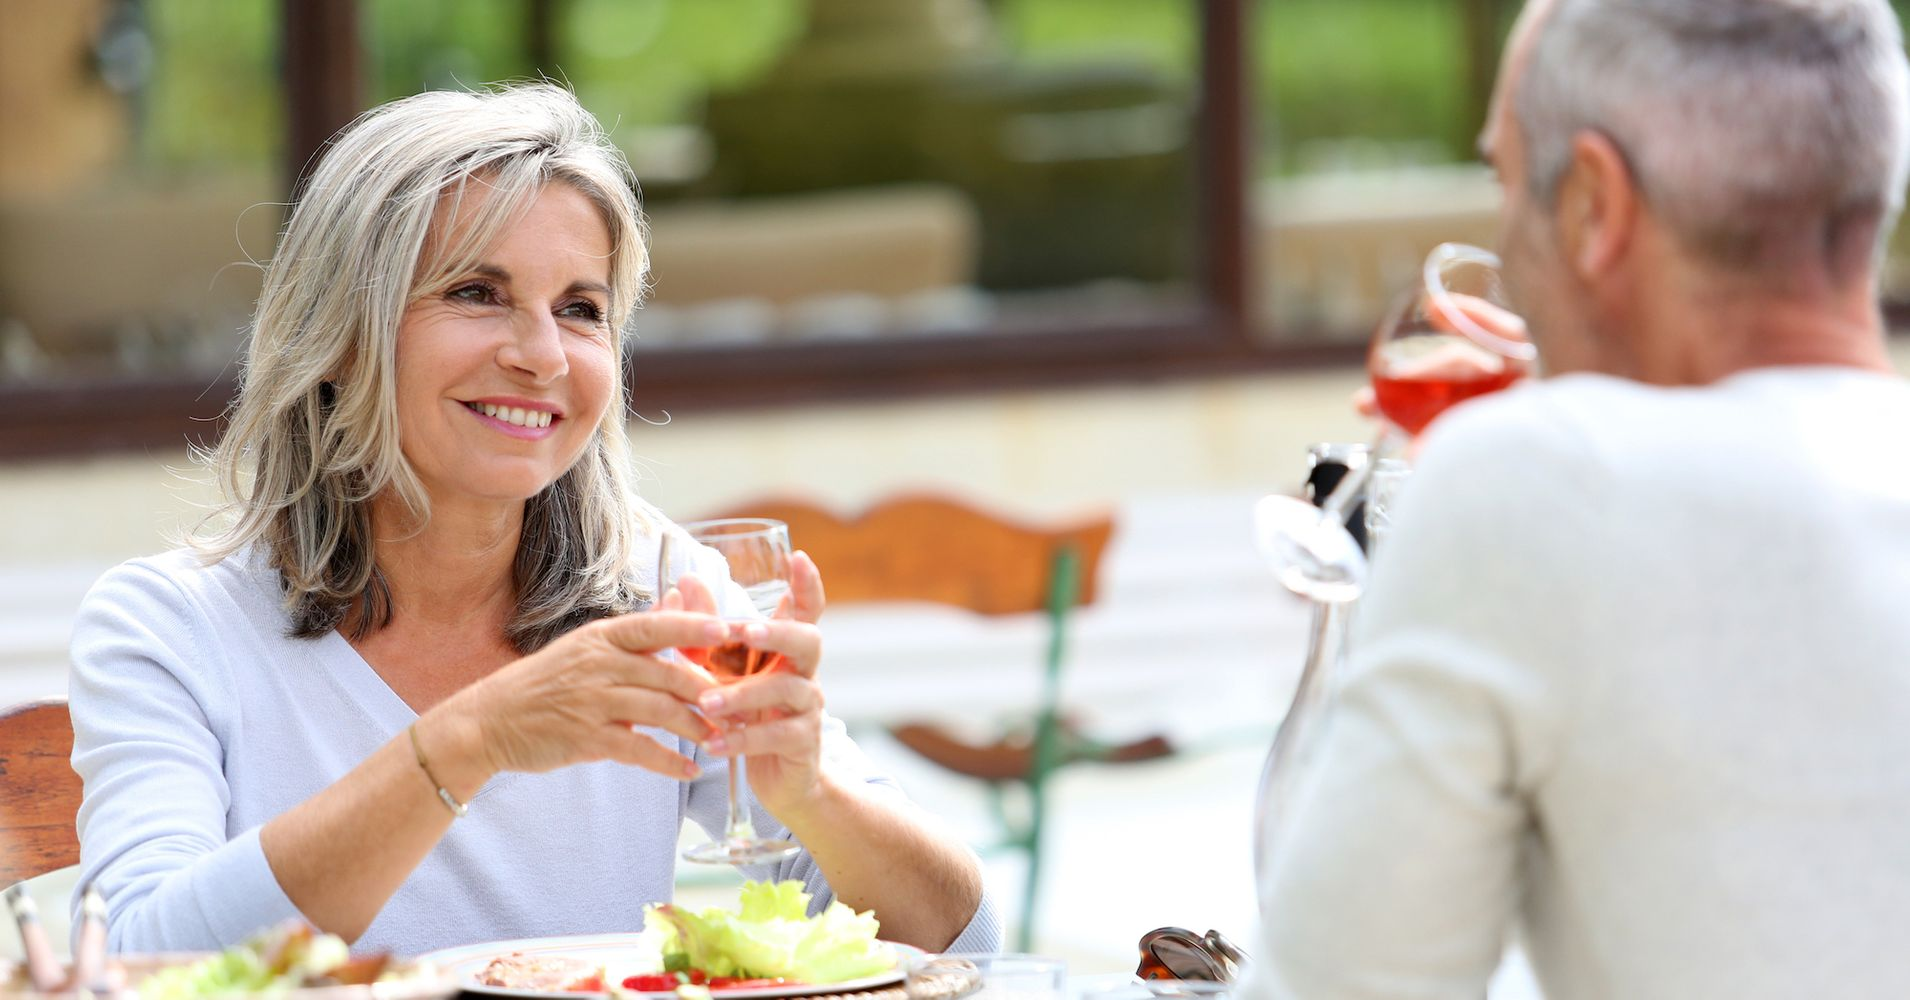 turkey senior dating site Options for senior and mature dating can seem limited, as many dating sites are geared toward a younger audience but whether you're over 50 and looking for love, over 60 and starting all over, or over 70 and looking for a like-minded companion, there are a number of great options for you.